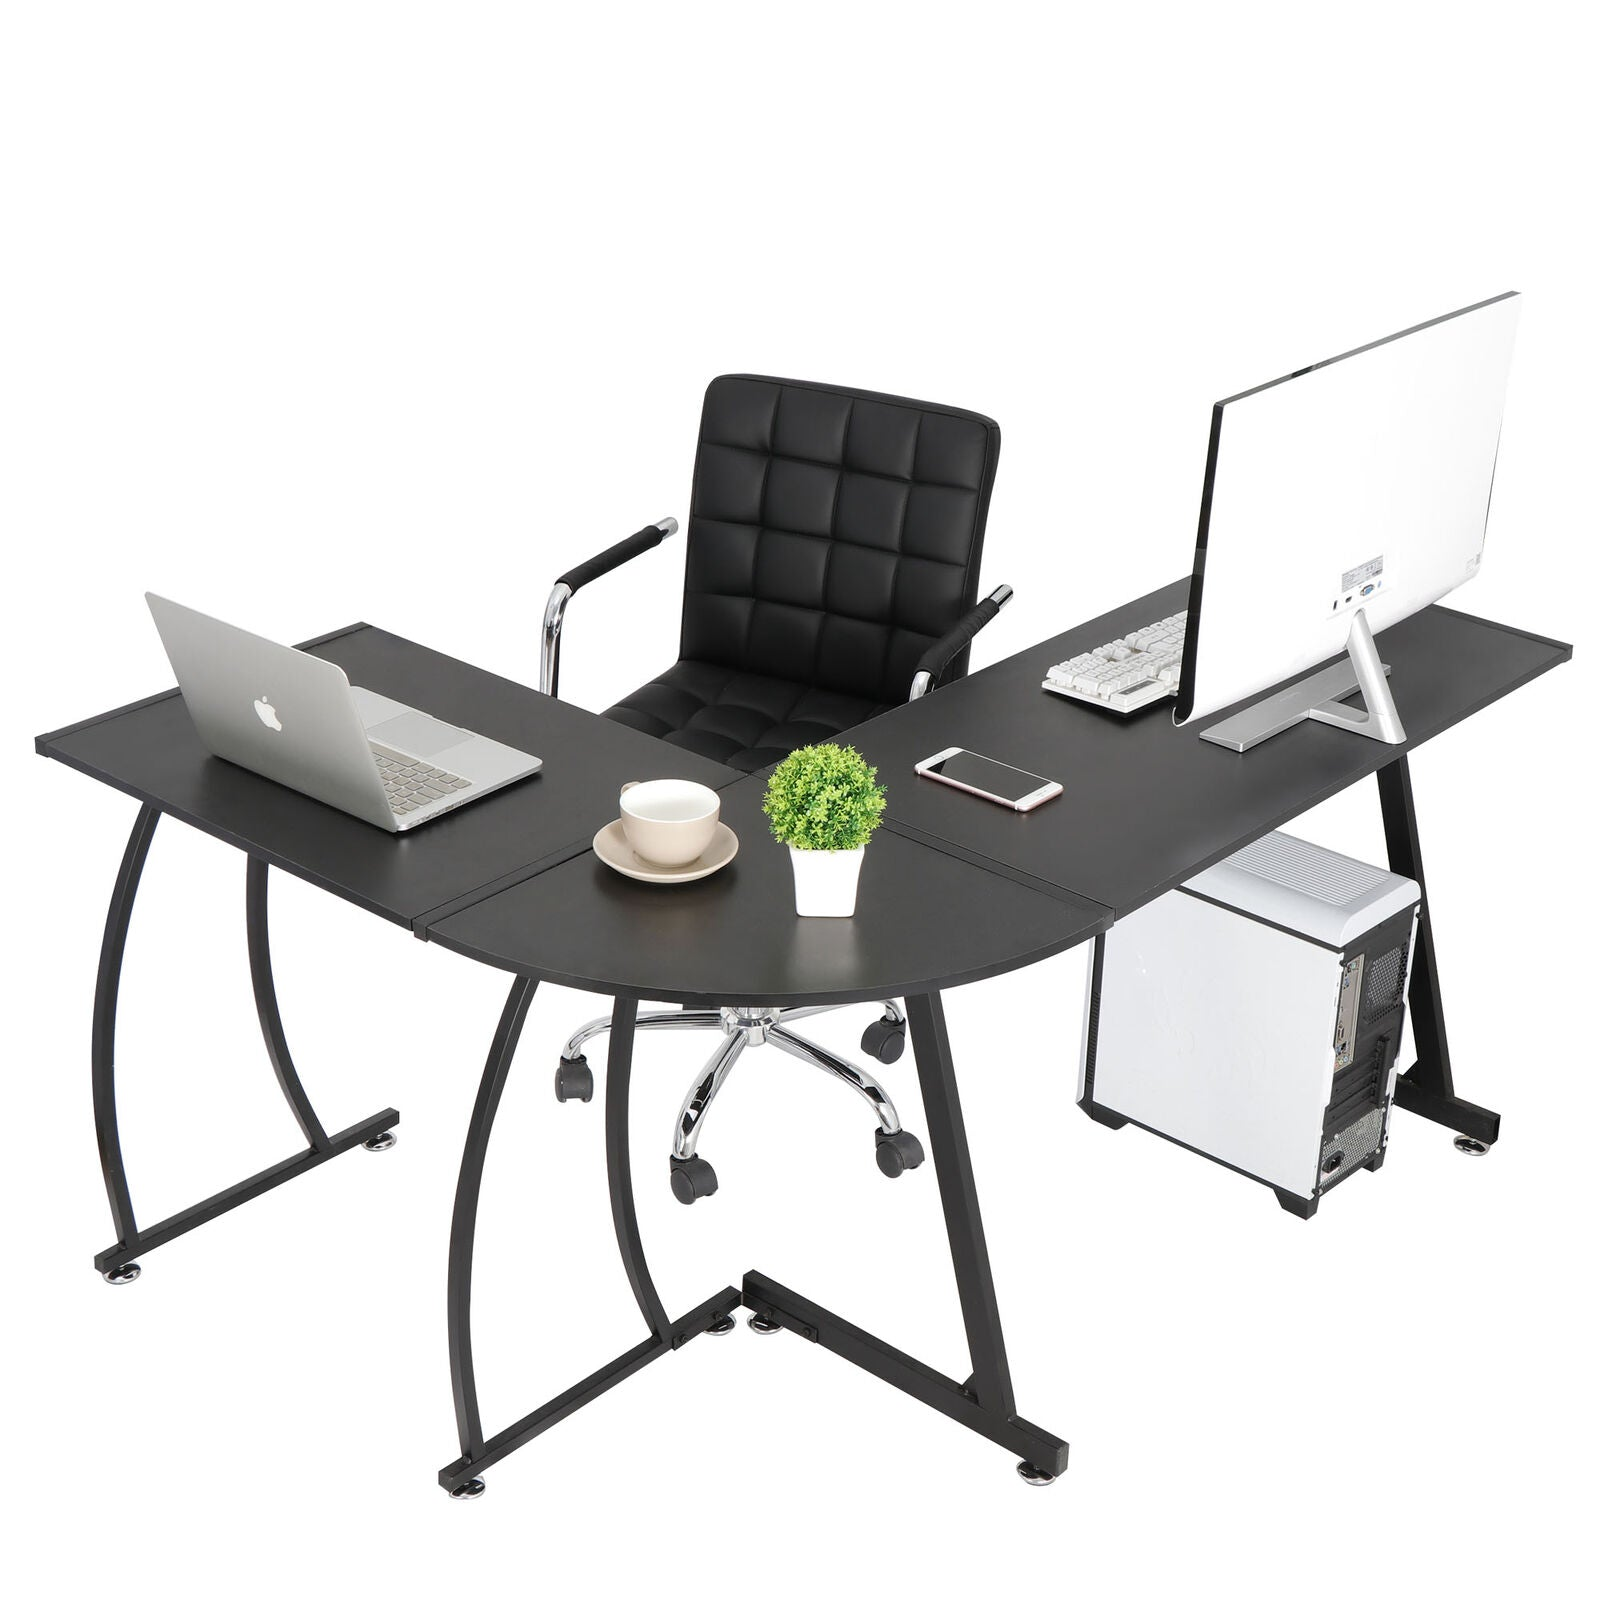 Premium L Shaped Gaming Computer Desk for Laptop PC - Morealis